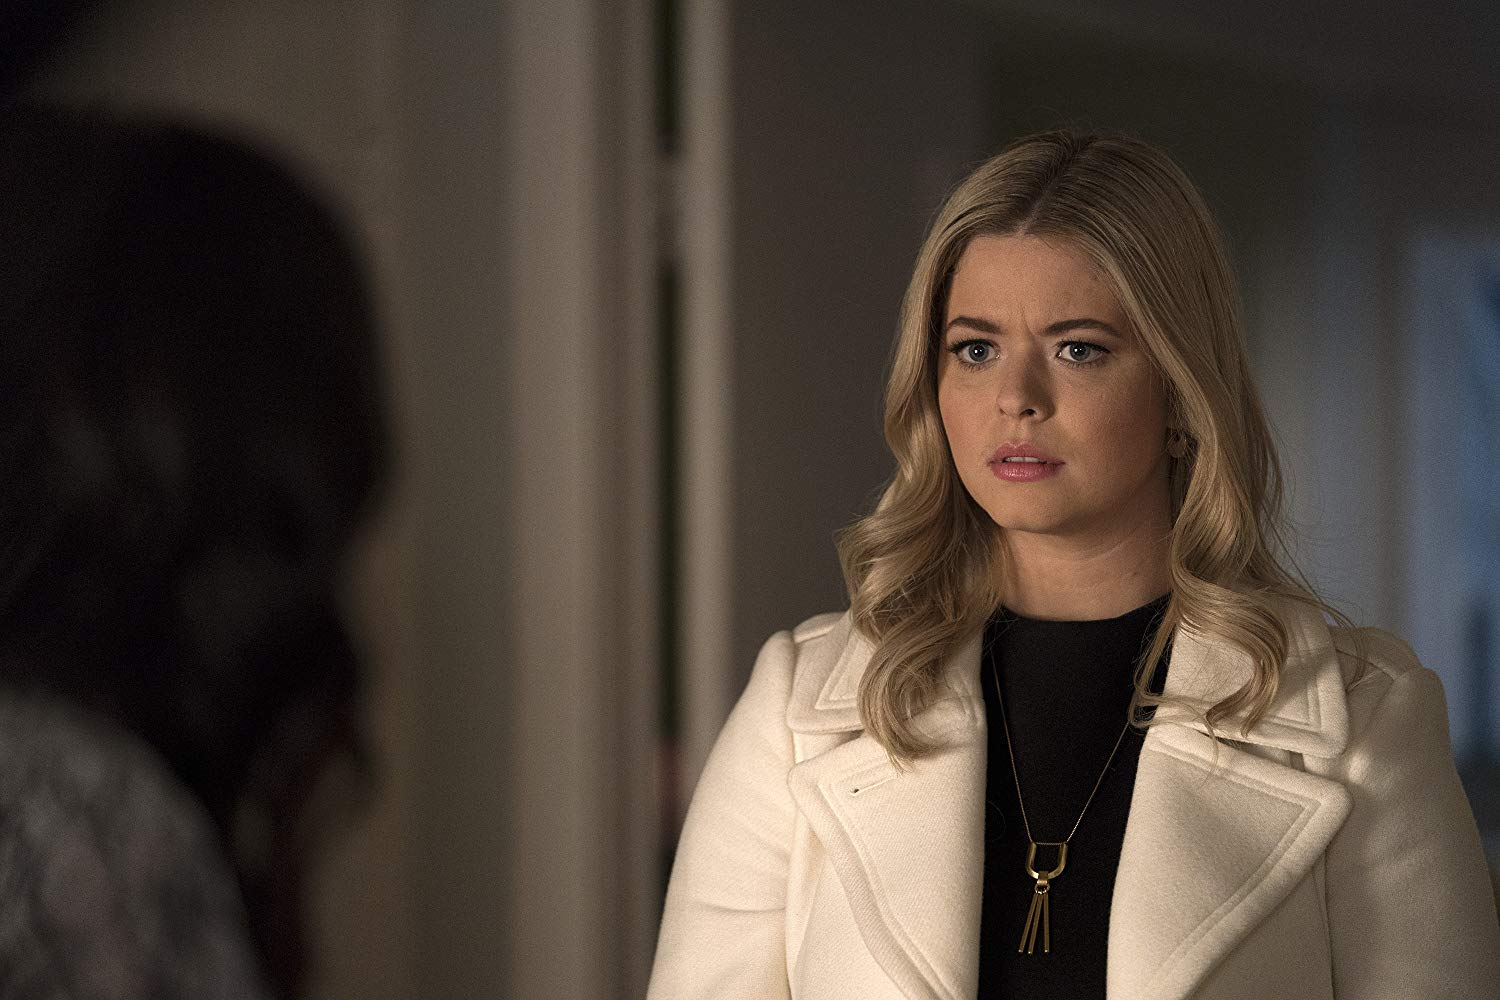 Pretty Little Liars: The Perfectionists - Season 1